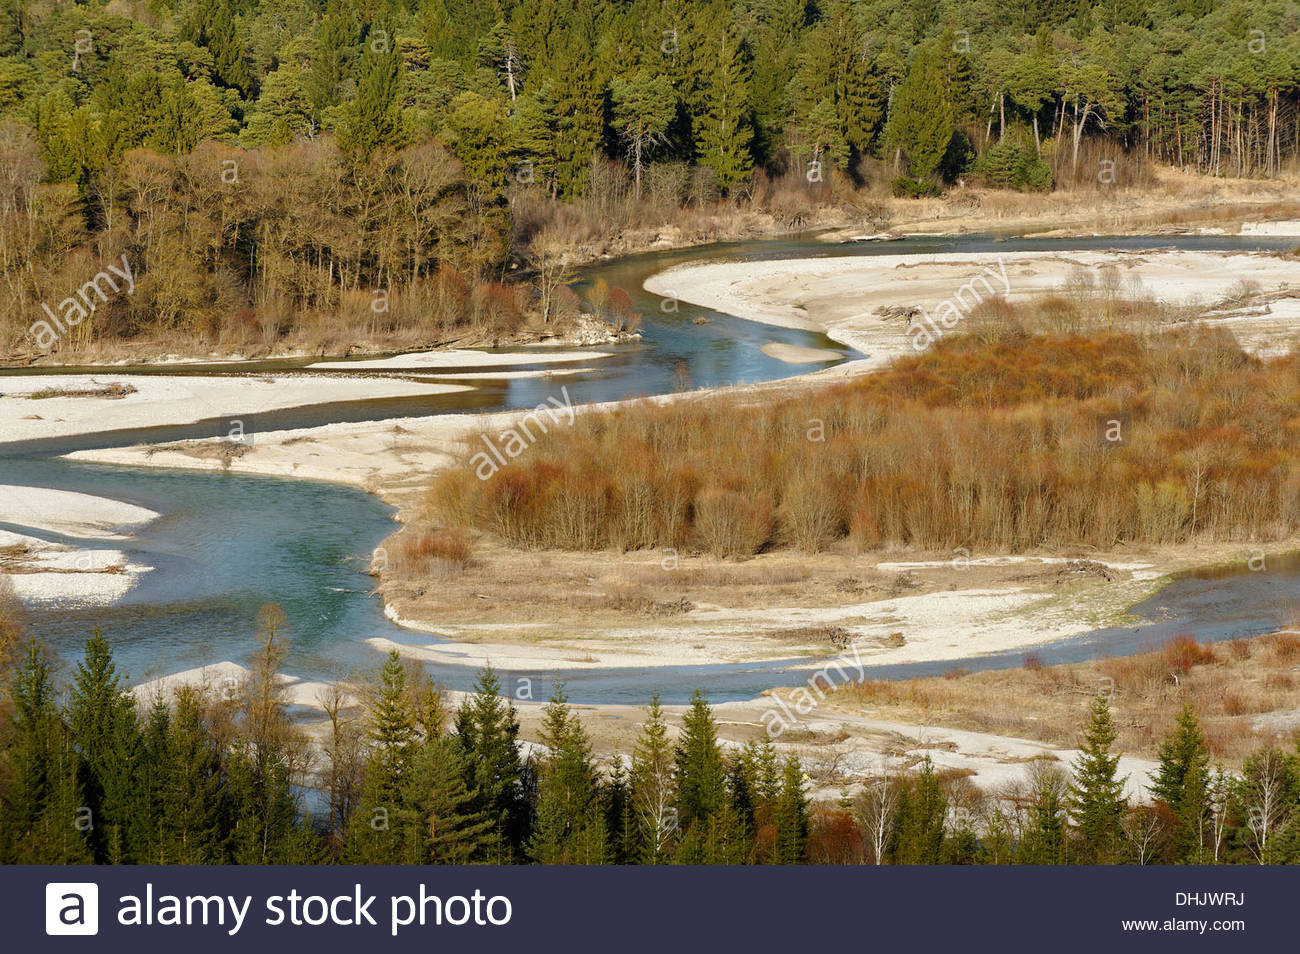 Germany, Bavaria, Pupplinger Au, view from Schlederloh to river Isar - Stock Image